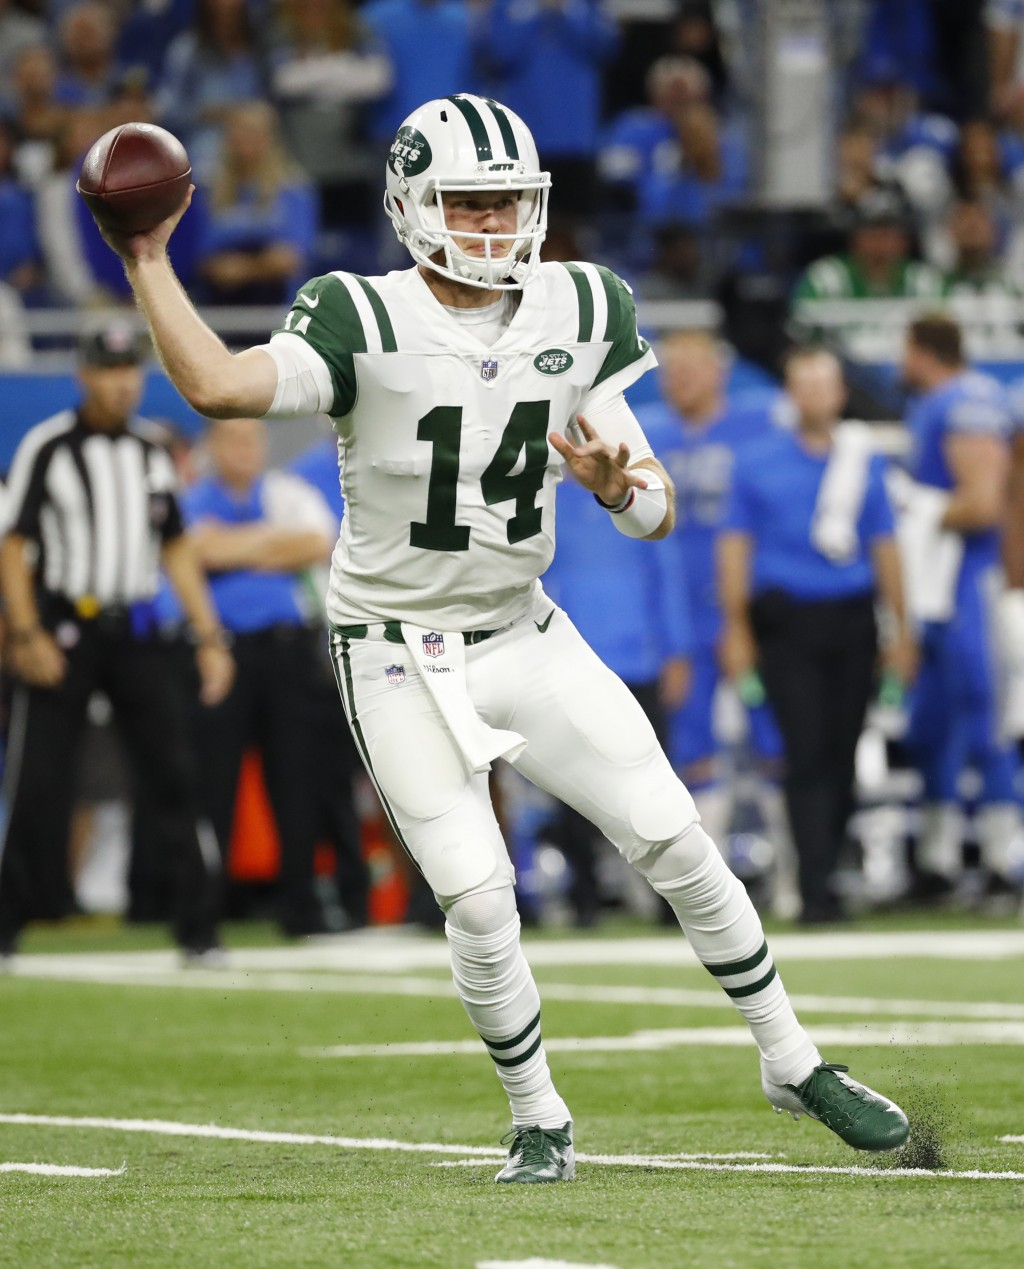 New York Jets quarterback Sam Darnold (14) throws against the Detroit Lions in the first half of an NFL football game in Detroit, Monday, Sept. 10, 20